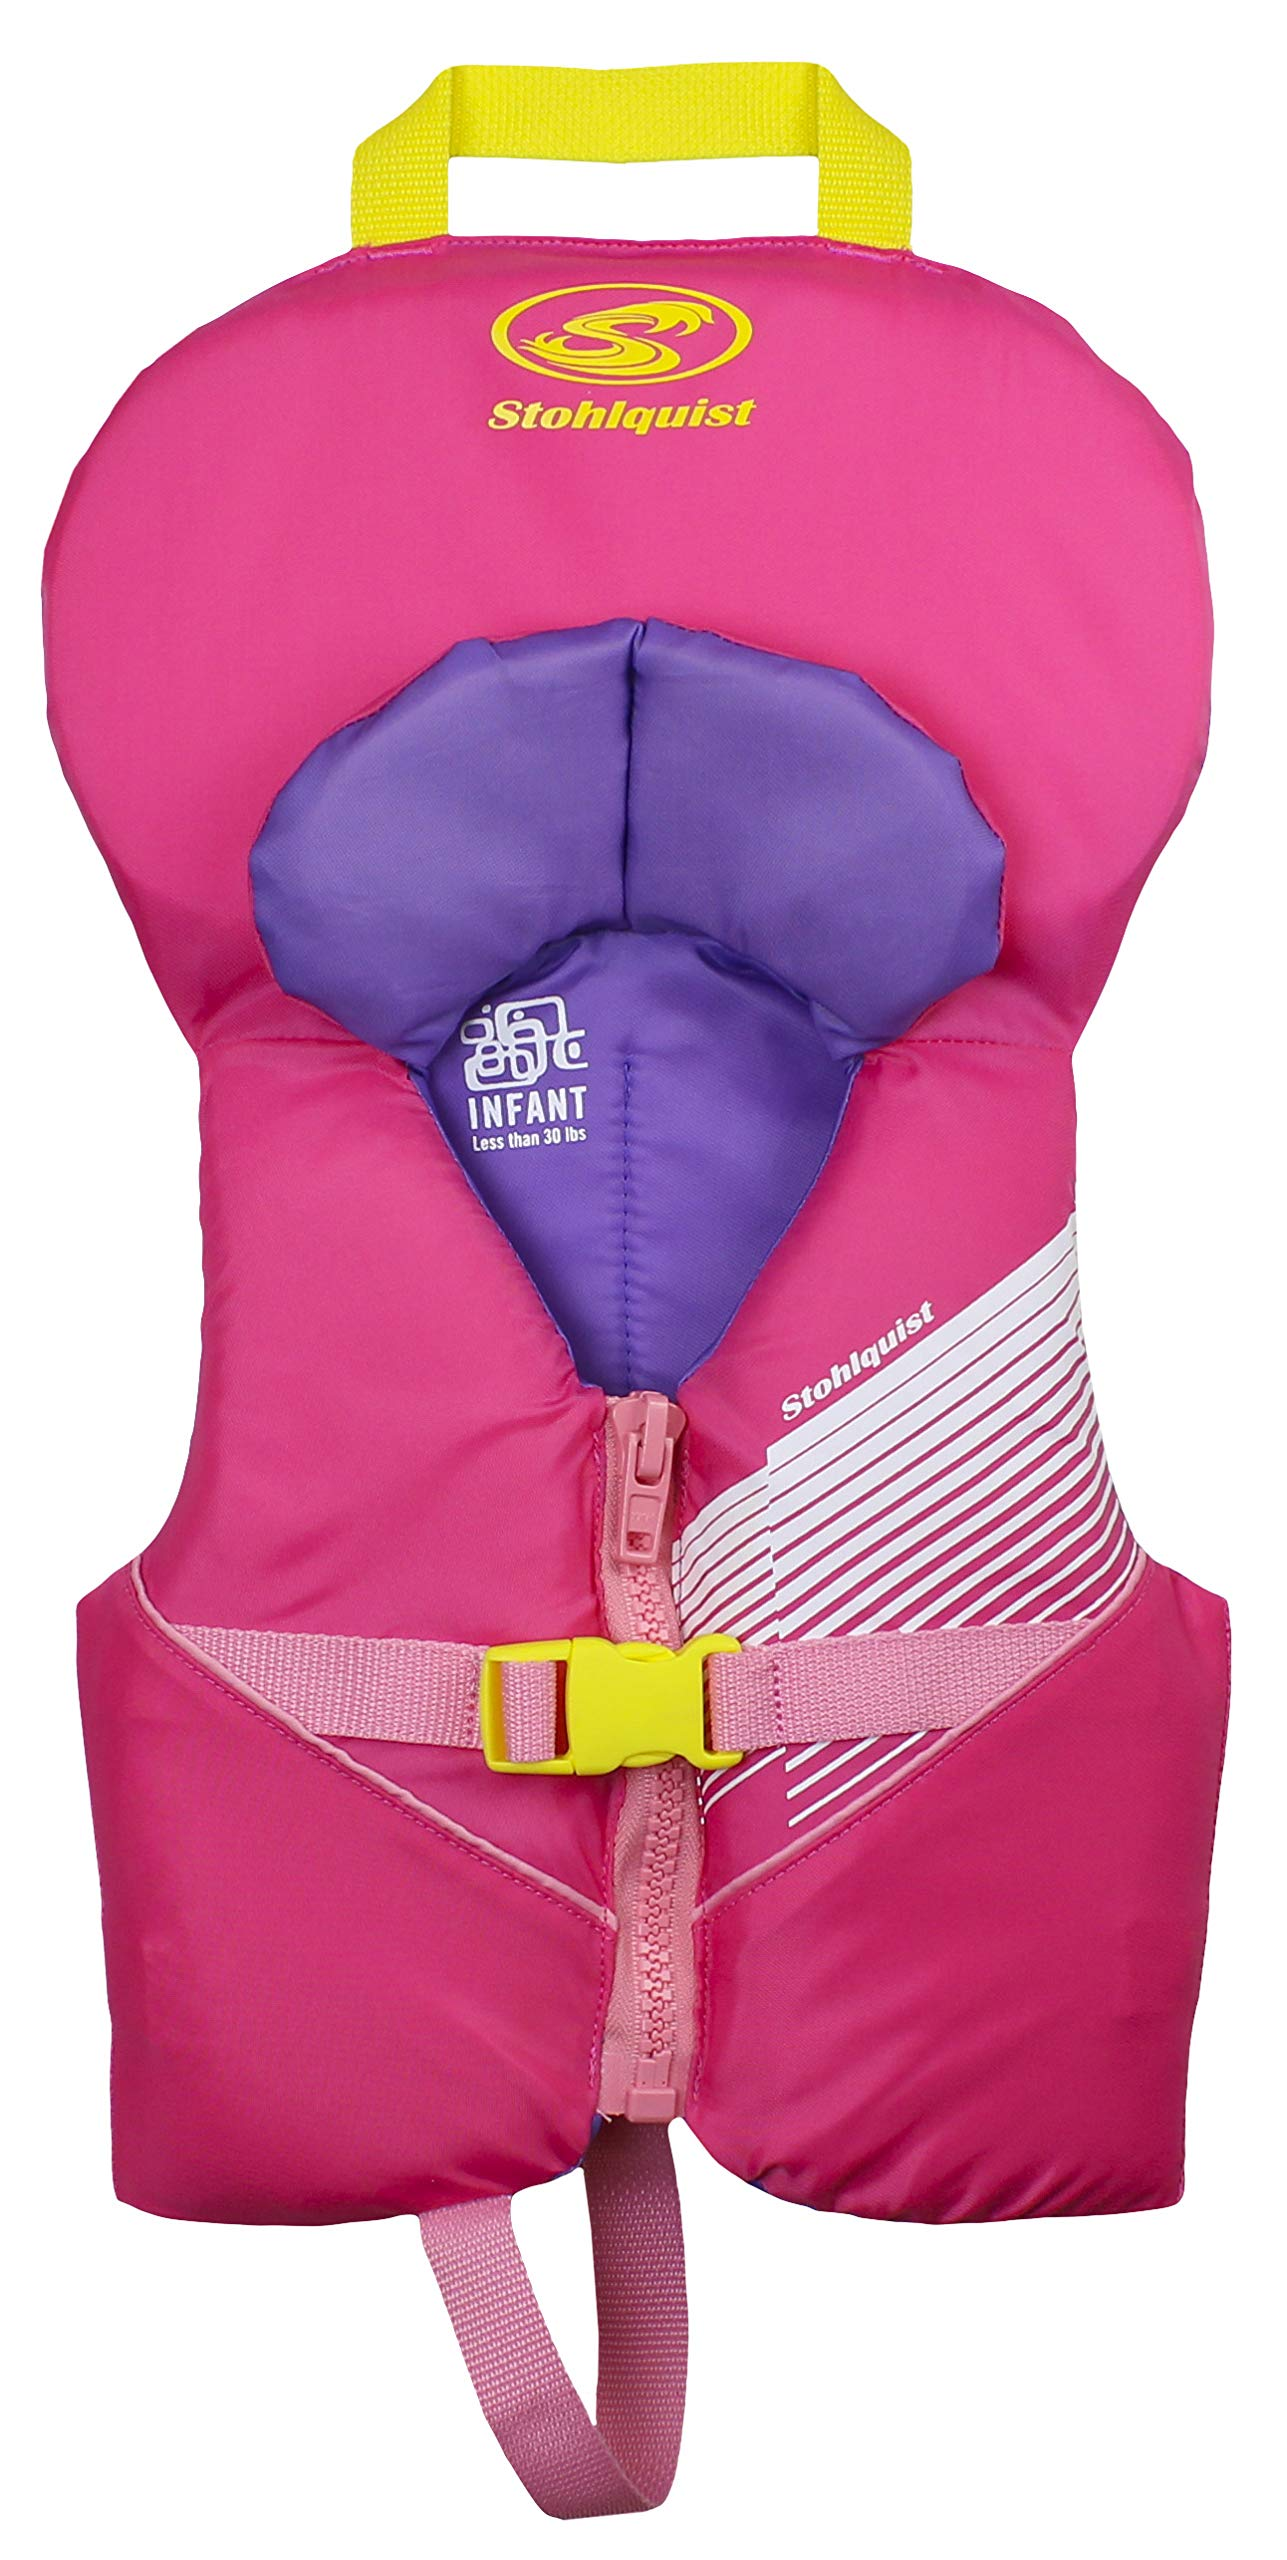 Stohlquist Waterware Toddler Life Jacket Coast Guard Approved Life Vest for Infants, Pink/Purple, 8-30 Pounds